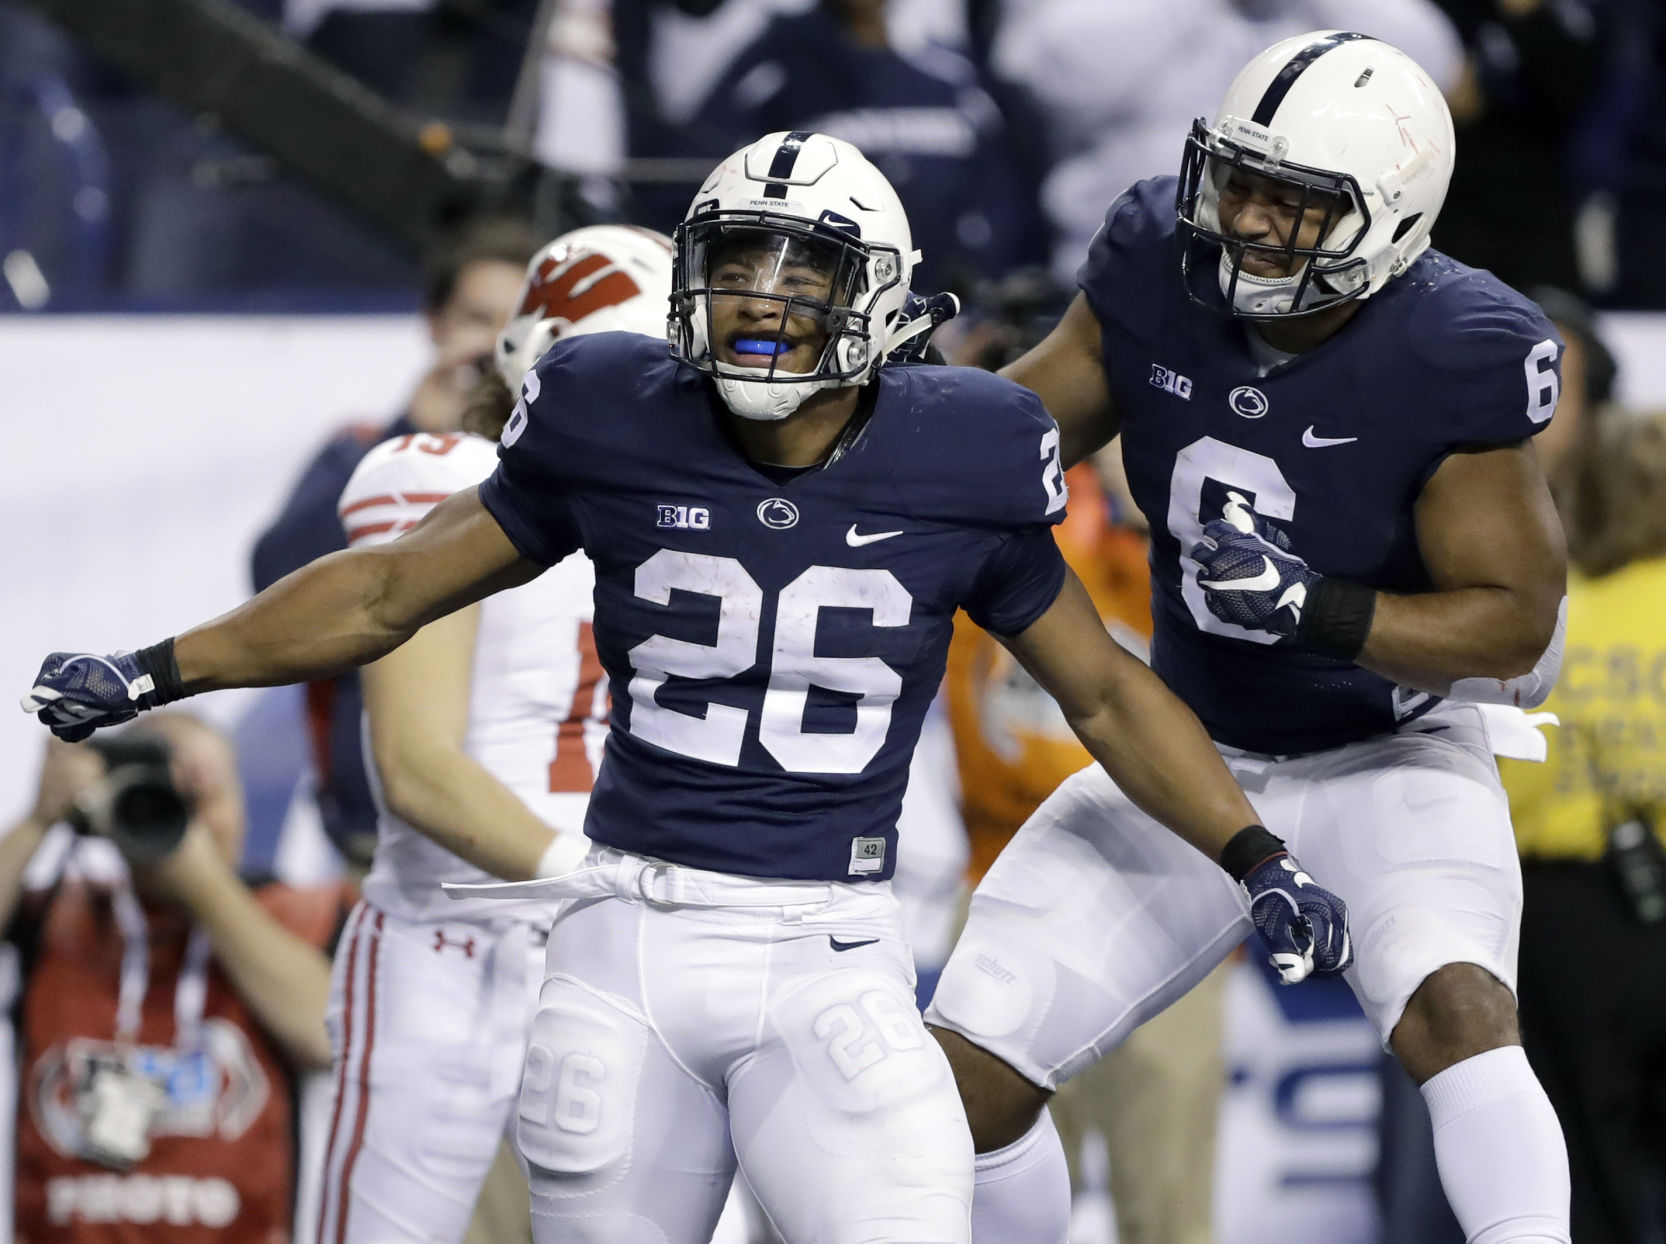 Penn State looks to make a better playoff case this season